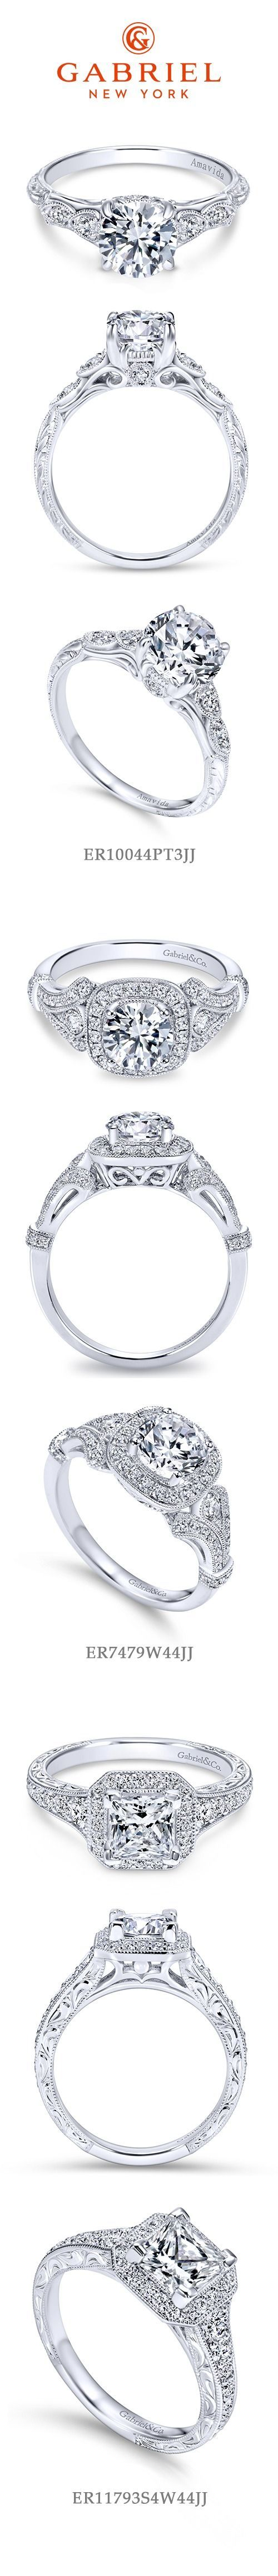 verragio setting ring engagement only rings afn new brand